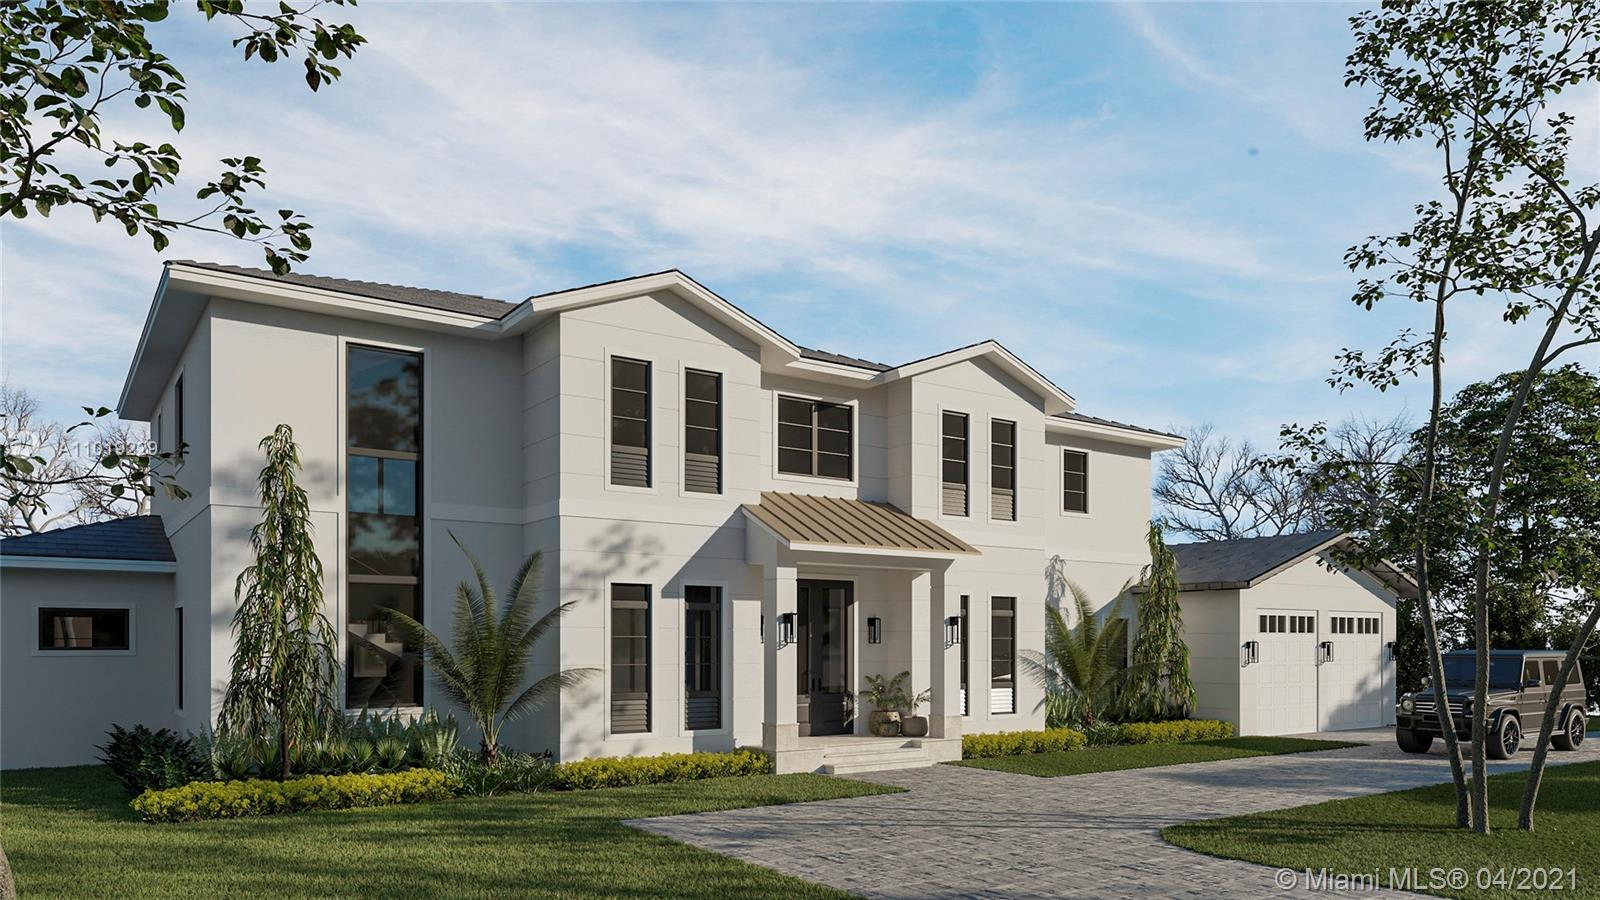 This new lakefront Hollub home under construction embodies the South Florida lifestyle, providing the perfect retreat- nestled on an idyllic Pinecrest street, offering a world of privacy, moments from top schools, recreation and Miami hot spots. Stunning modern farmhouse with legendary timeless design and quality, featuring 6 bedrooms and 7 baths, 6,458 SF, elevator, exceptional living and entertaining spaces with gorgeous views of the artful landscape, pool and lake beyond, custom kitchen with Wolf, Sub-Zero, plus 2 en suite bedrooms. The 2nd floor's luxurious owner's suite has a large terrace with panoramic views. A loft, elevator, plus 3 additional en suite bedrooms complete the 2d floor.